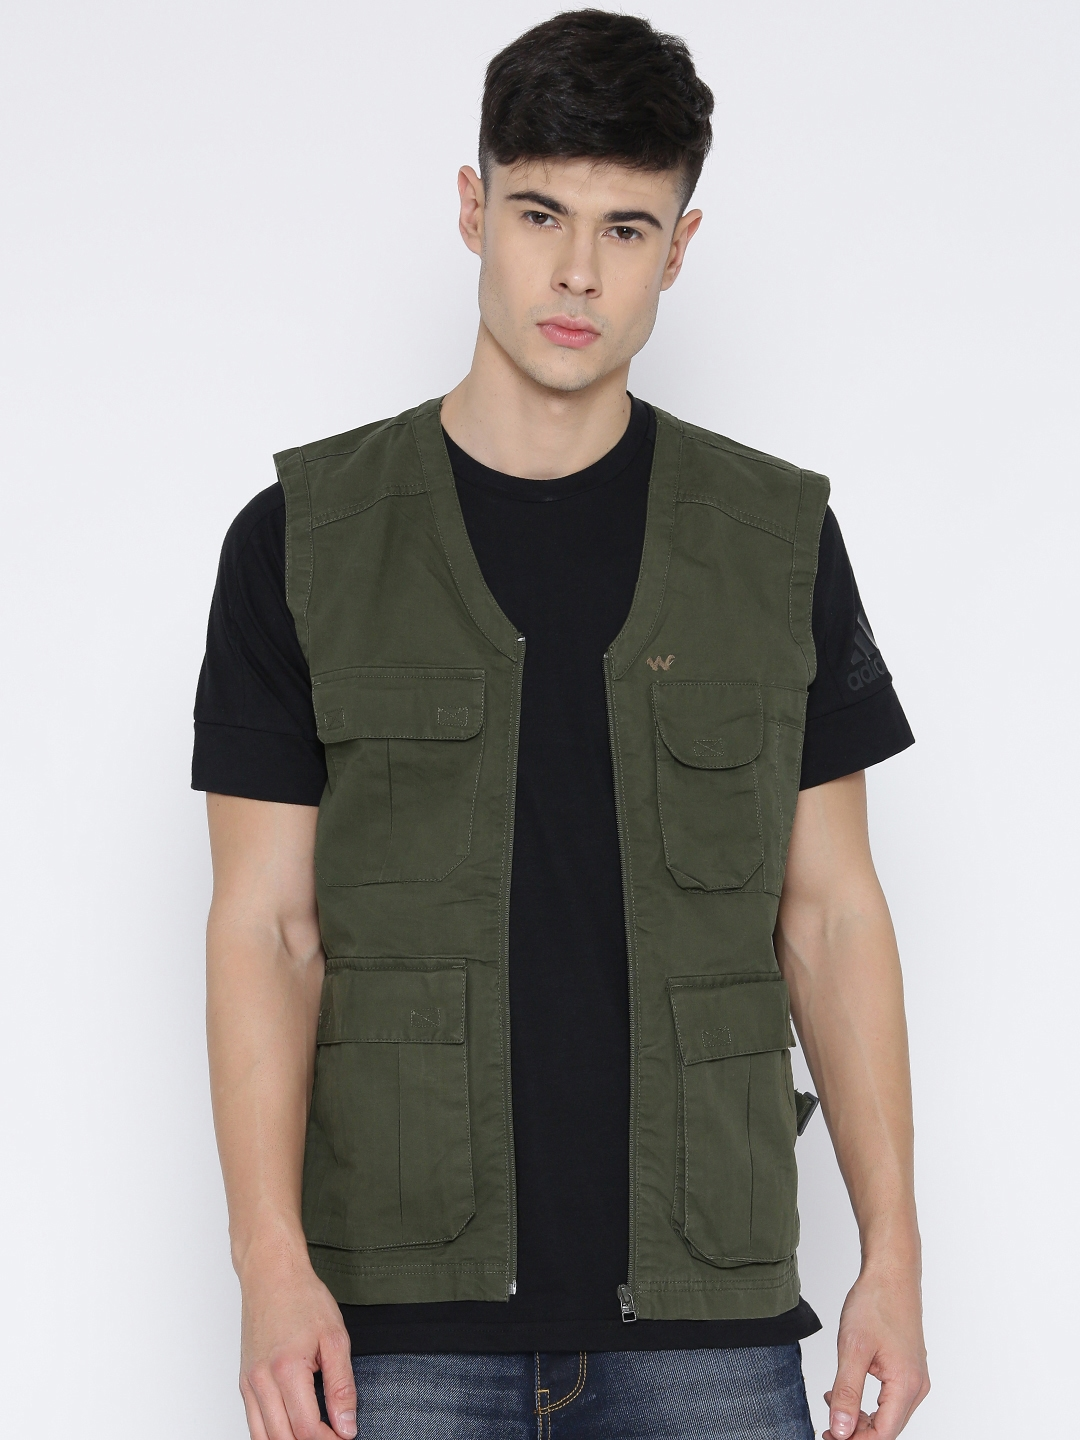 00ad383577d2a Buy Wildcraft Olive Green Sleeveless Utility Cao Utility Jacket ...